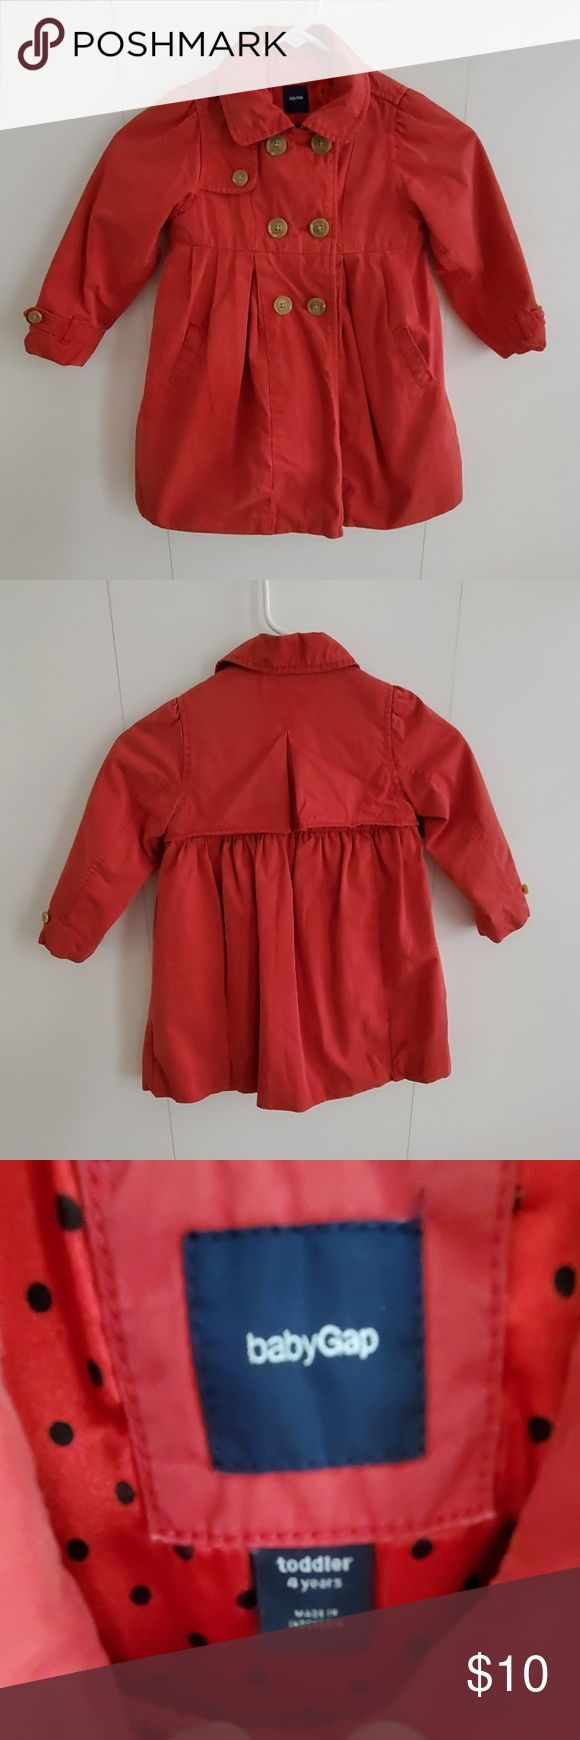 Baby Gap Red Coat Adorable Baby Gap Coat  Perfect